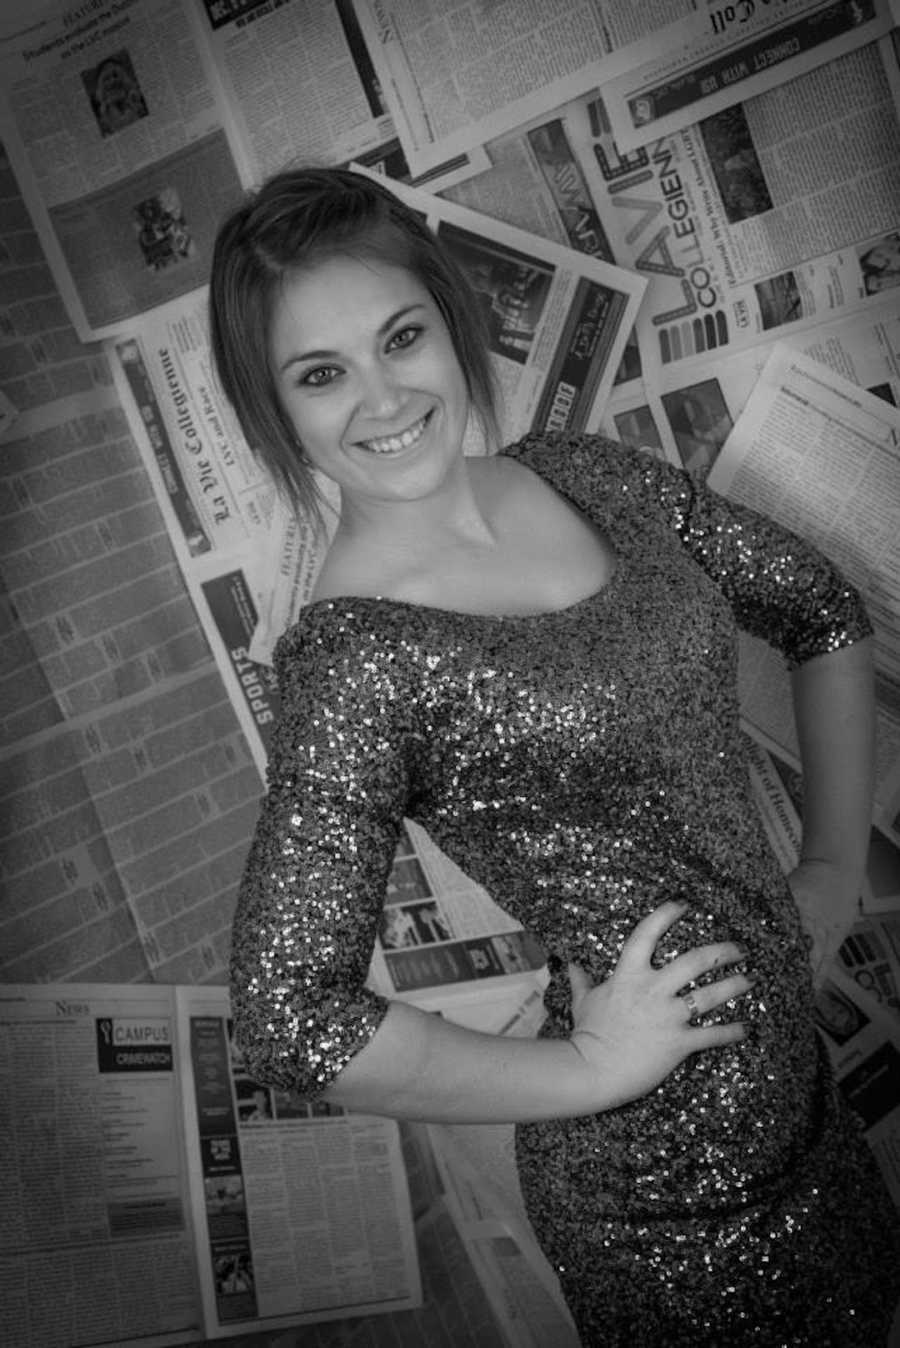 Black and white photo of smiling girl wearing sparkly shirt in